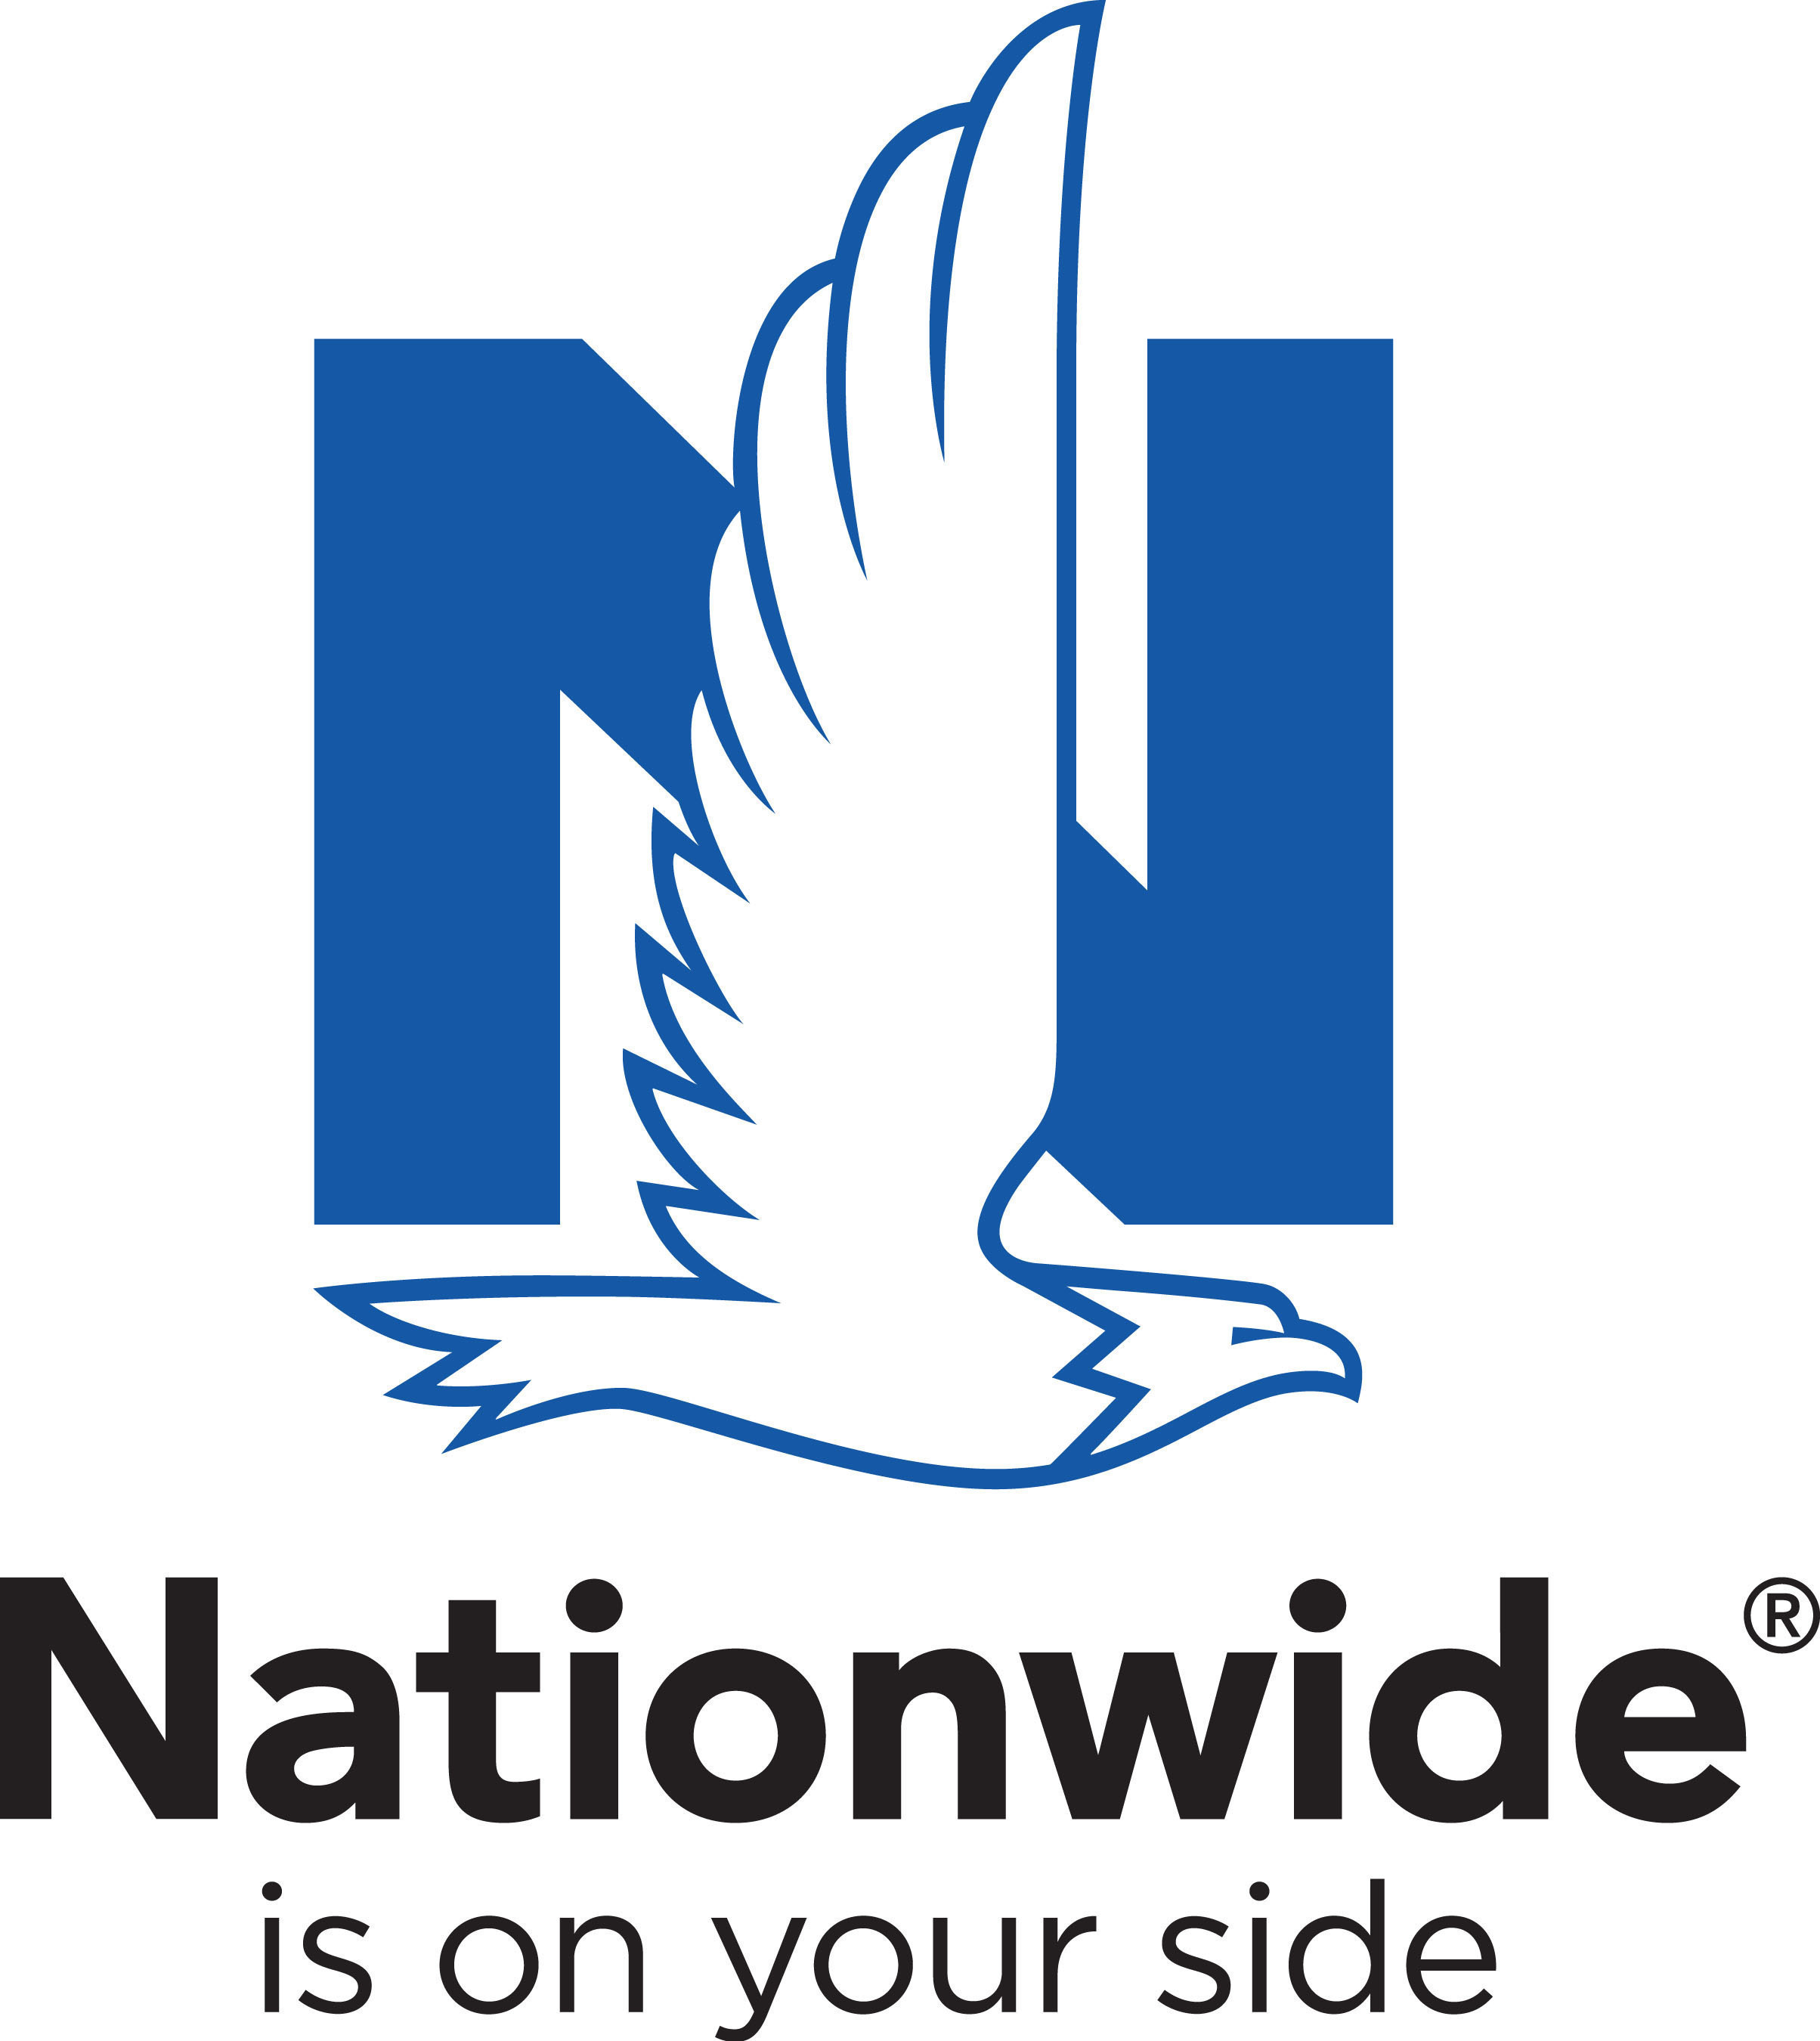 Nationwide Completes Rebrand Of Scottsdale Insurance Company